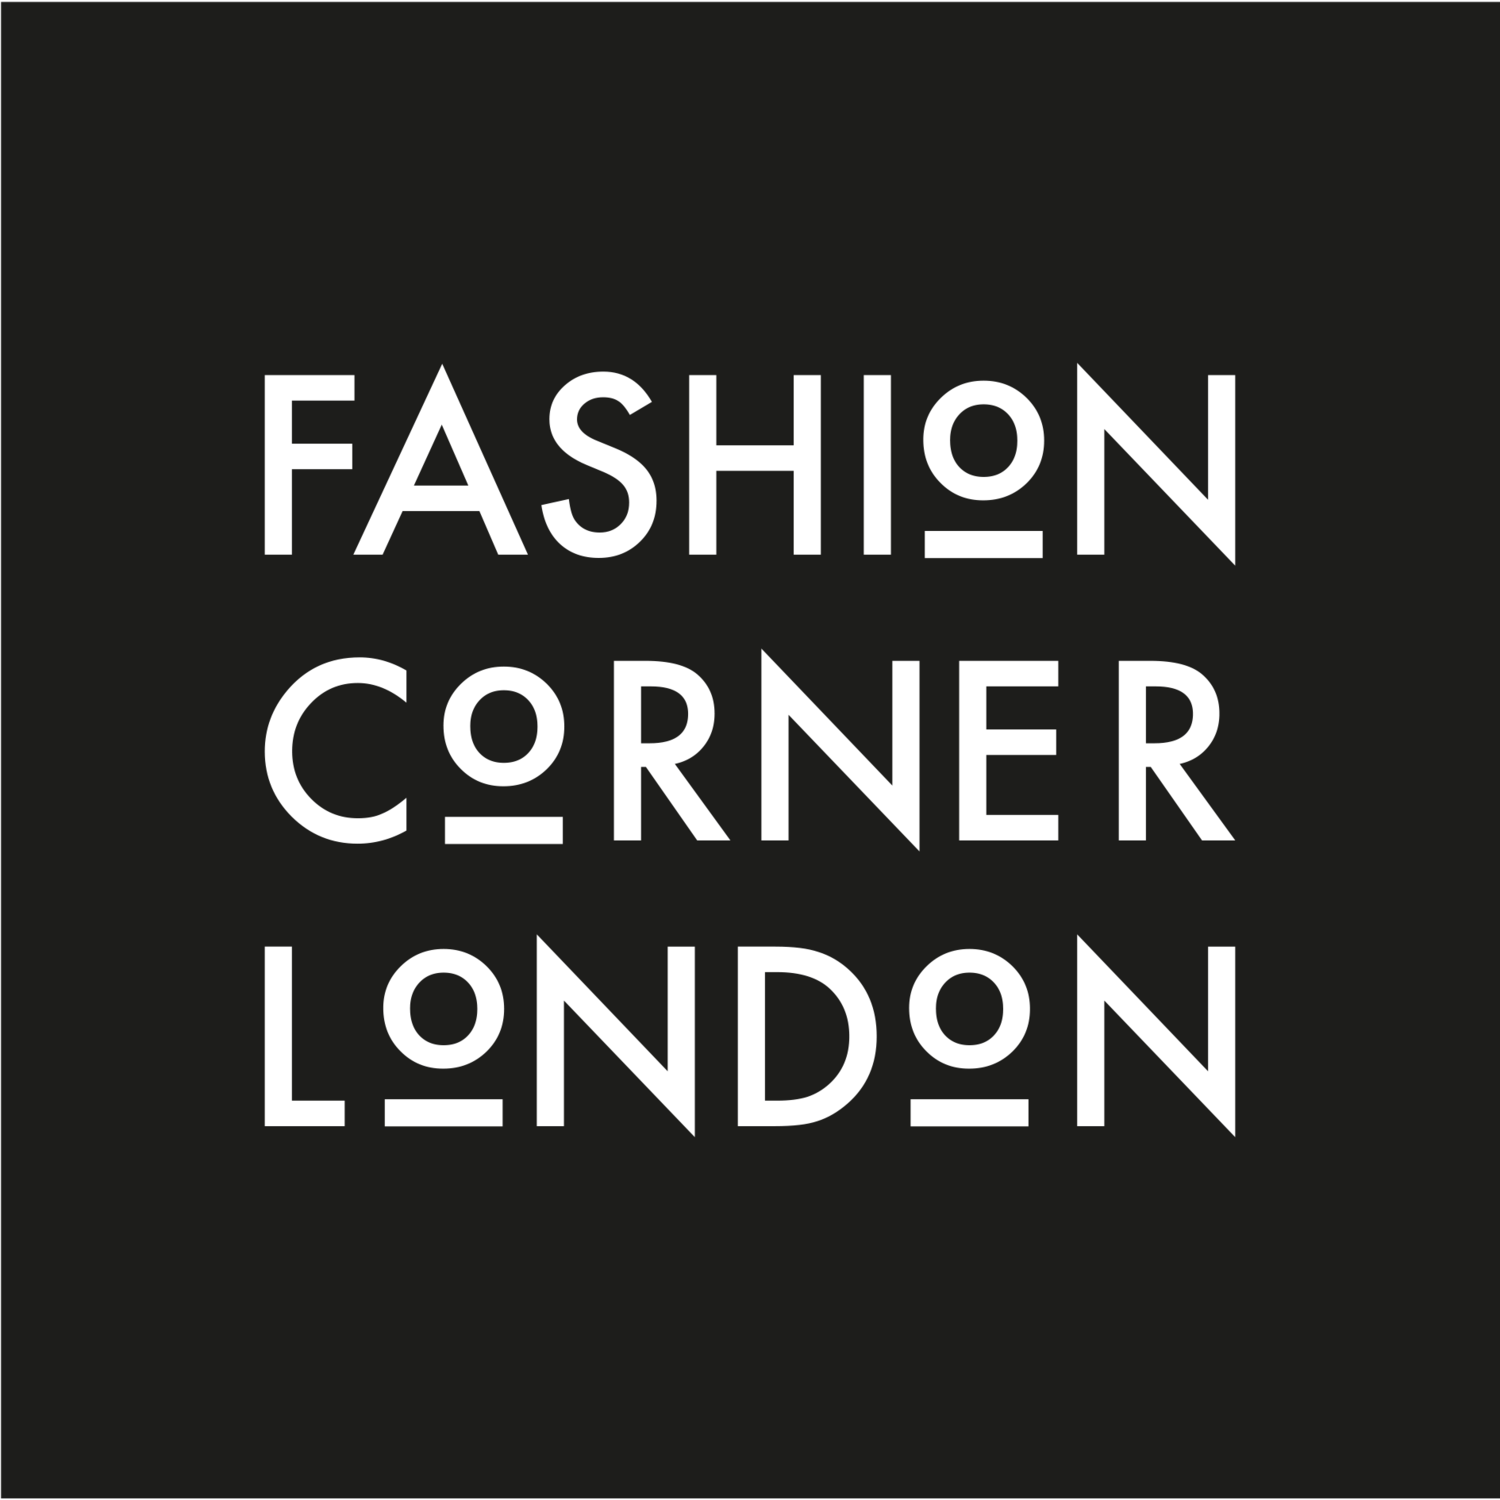 Fashion Corner London